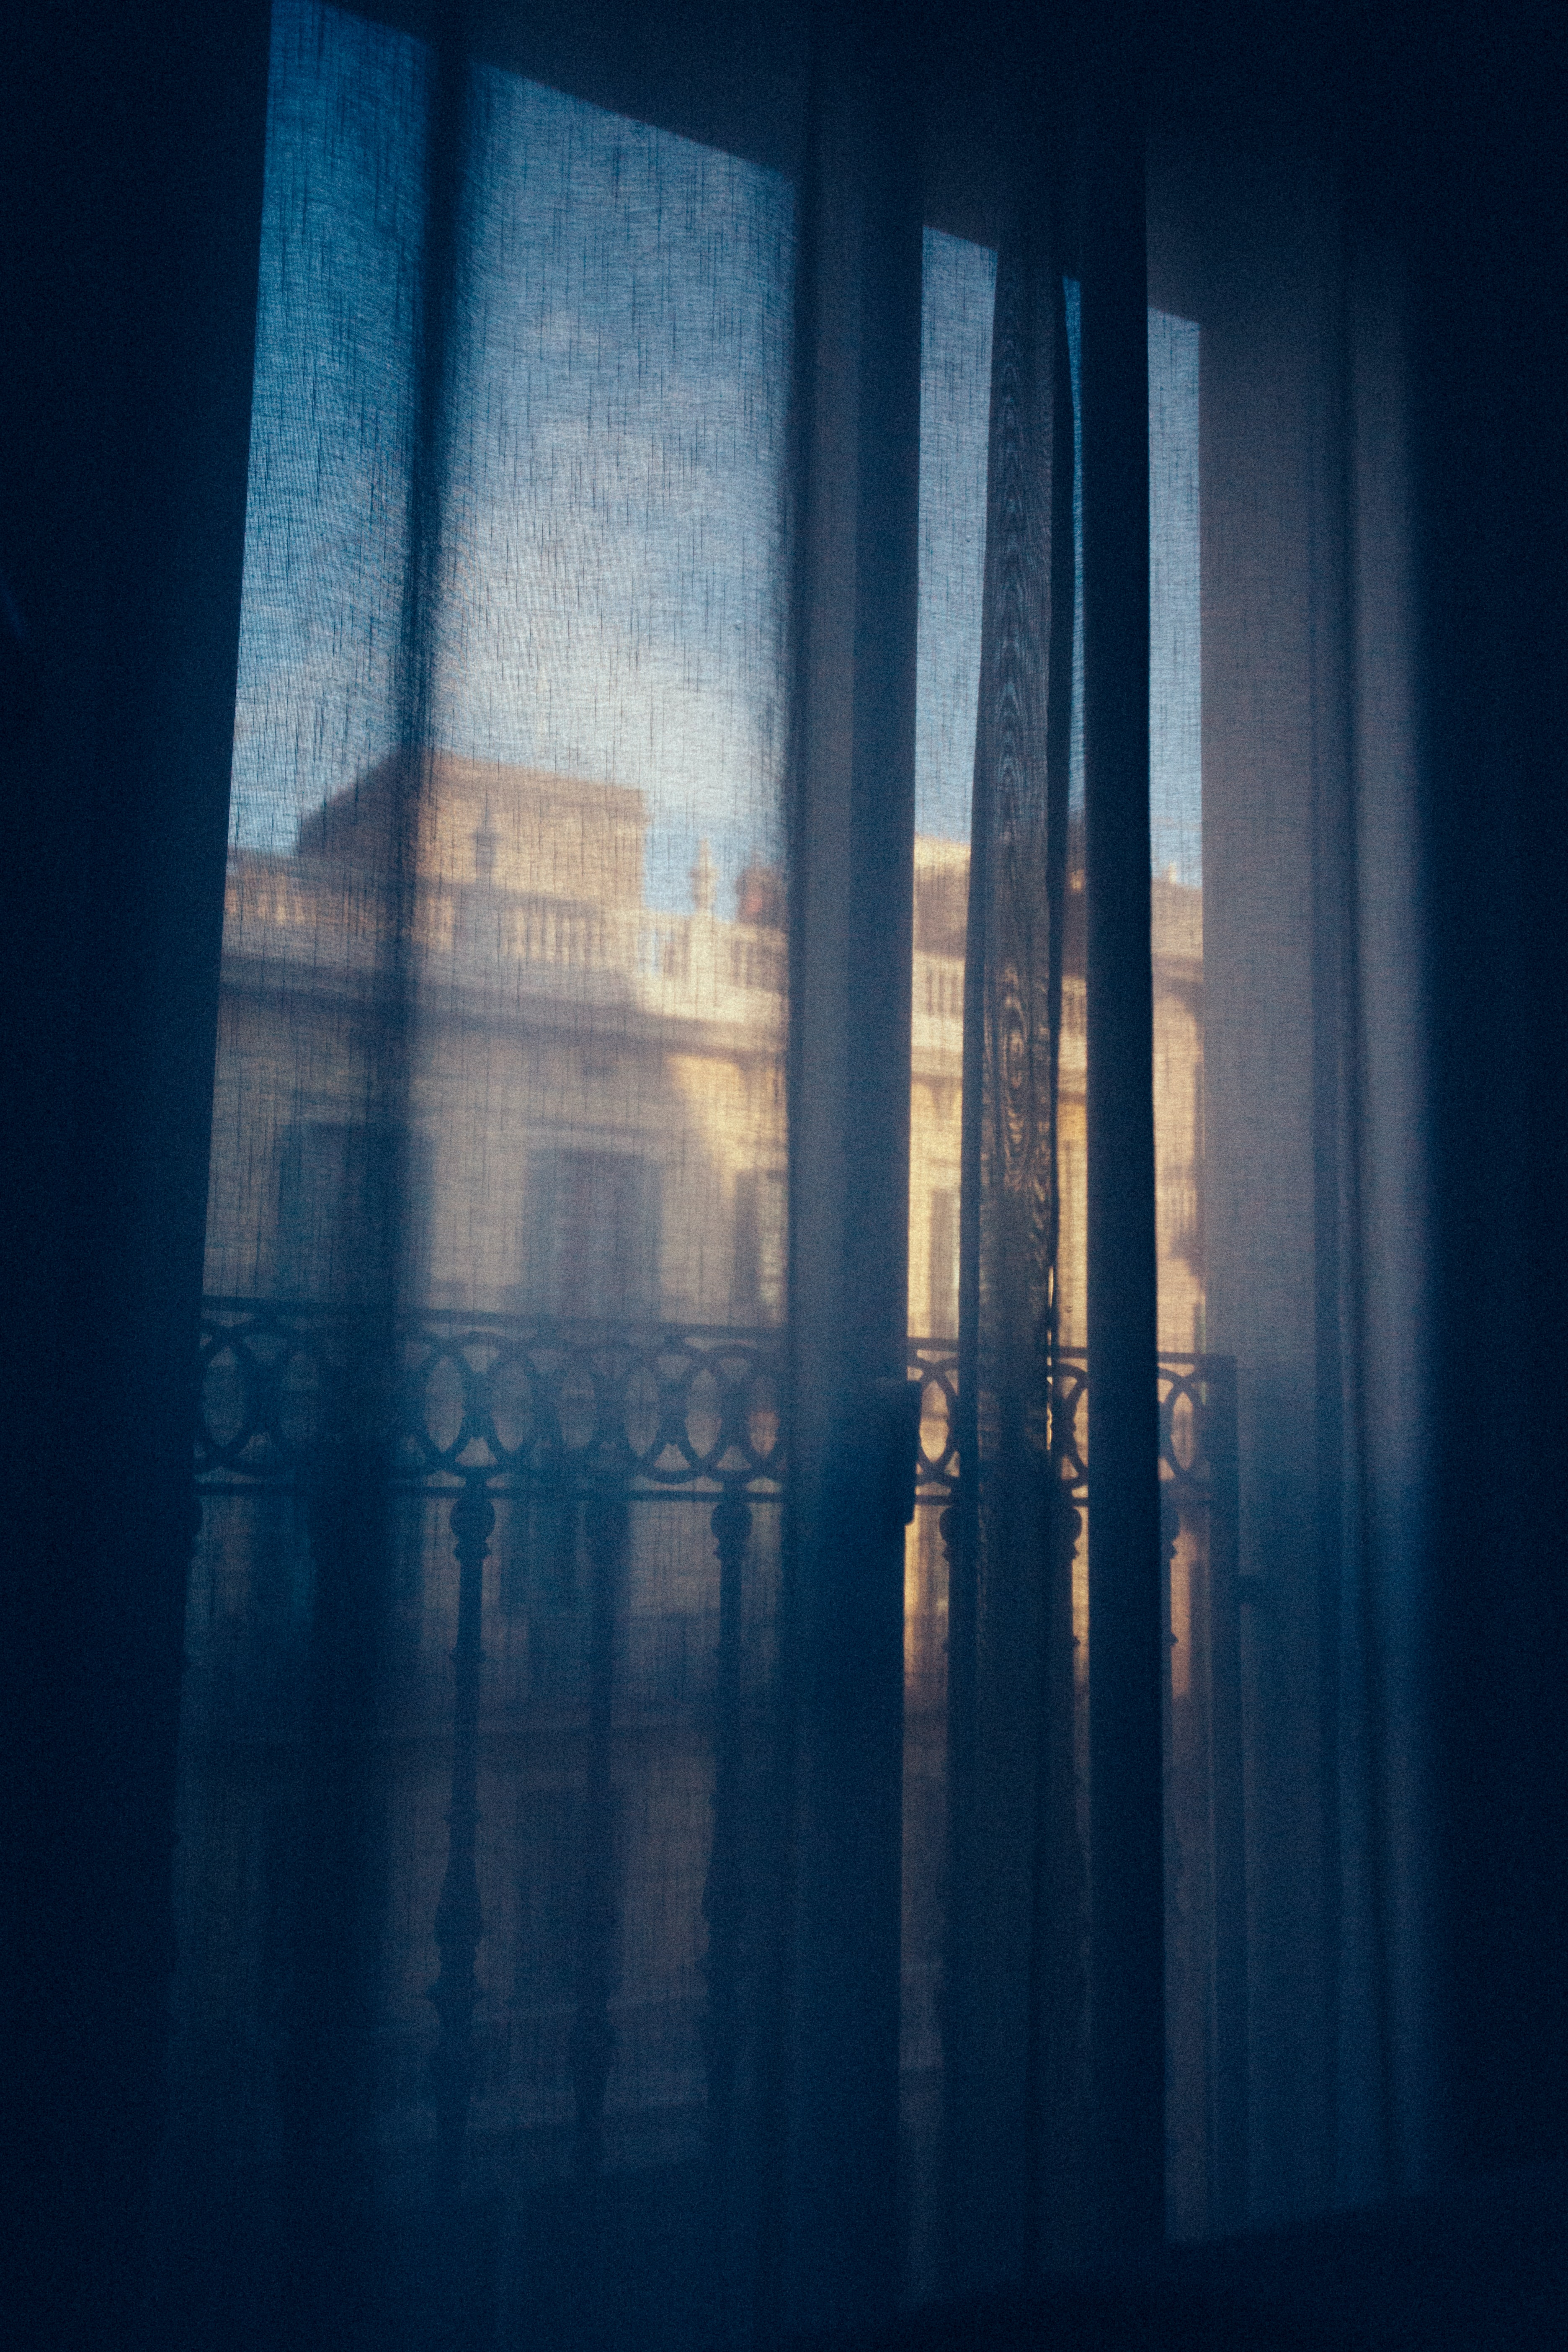 The view outside a window through a blue curtain.